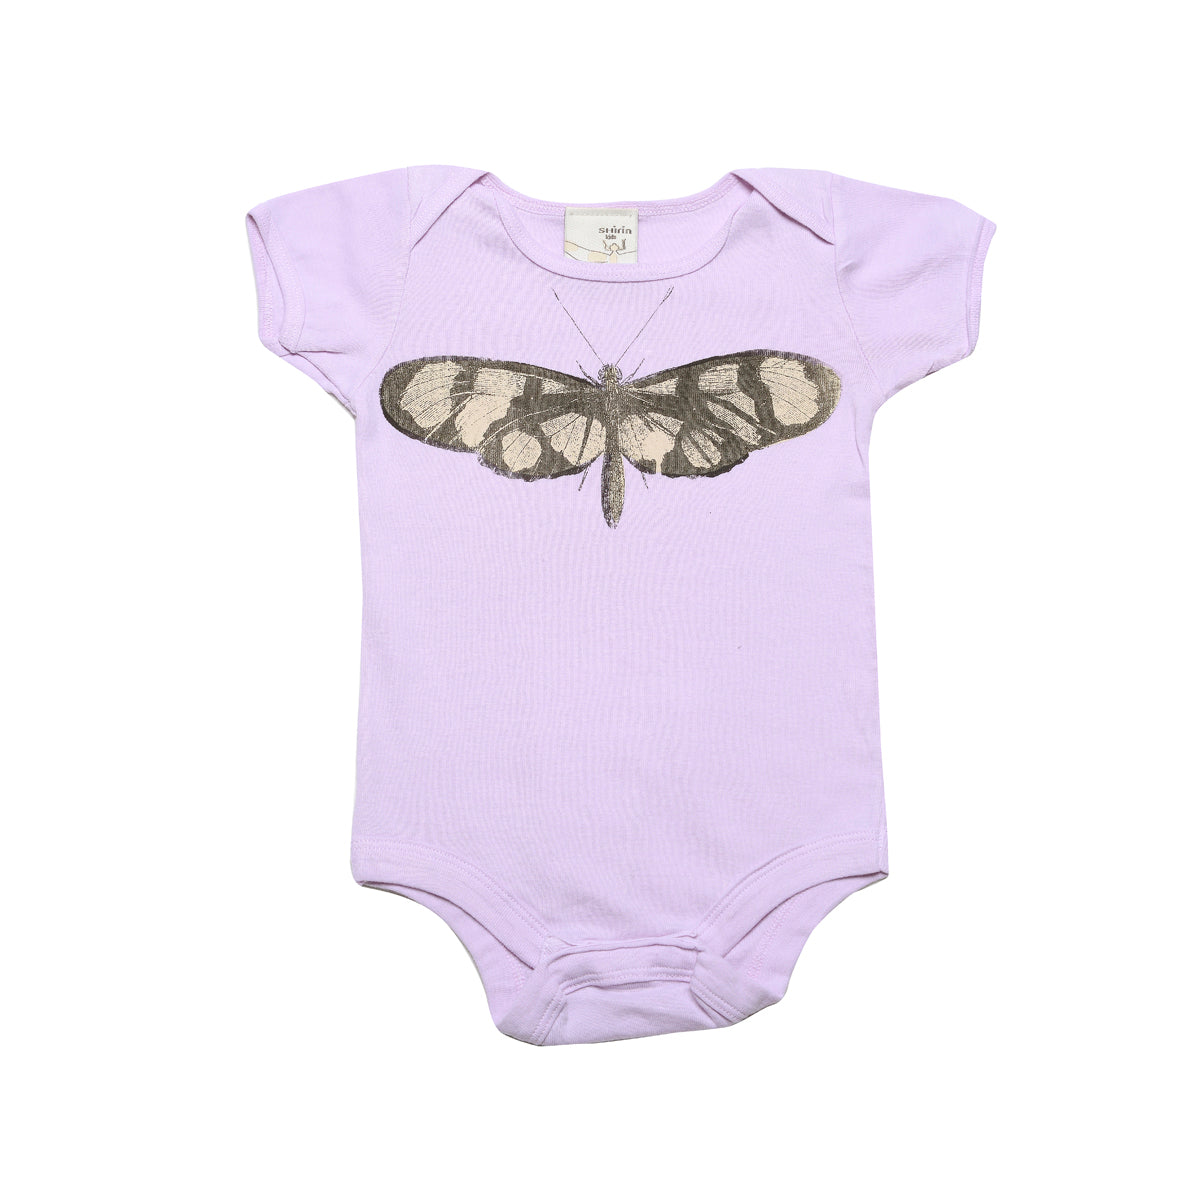 Organic infant bodysuit- Butterfly print - Organic World Nation